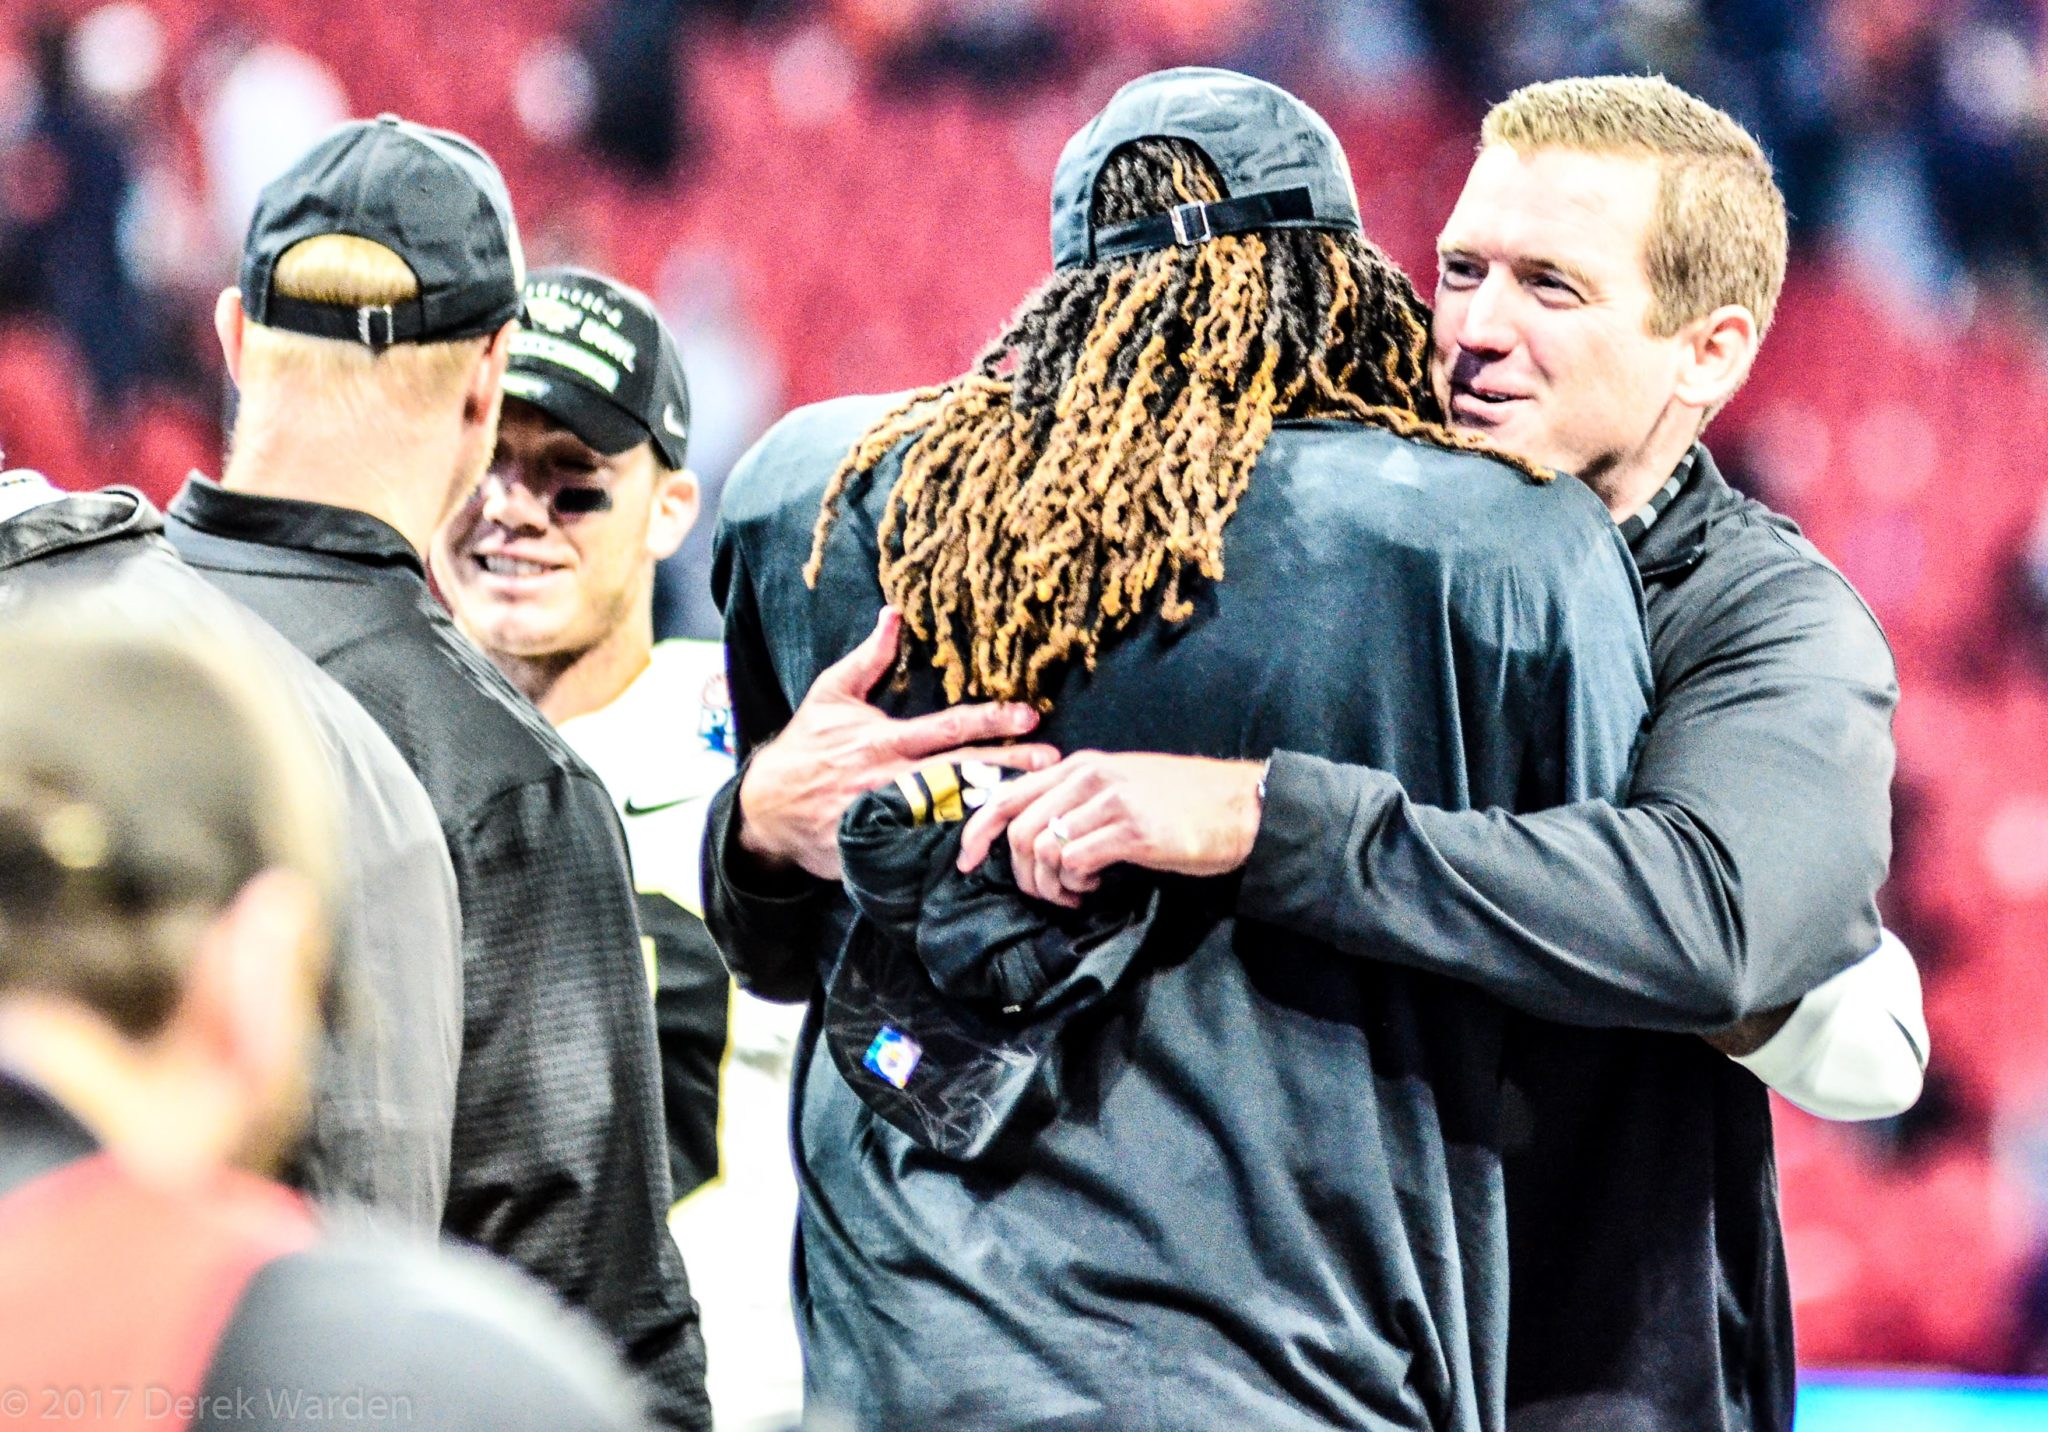 UCF A.D. Danny White embraces Shaquem Griffin after the Knights' victory over Auburn in the 2018 Chick-Fil-A Peach Bowl. (Photo: Derek Warden)